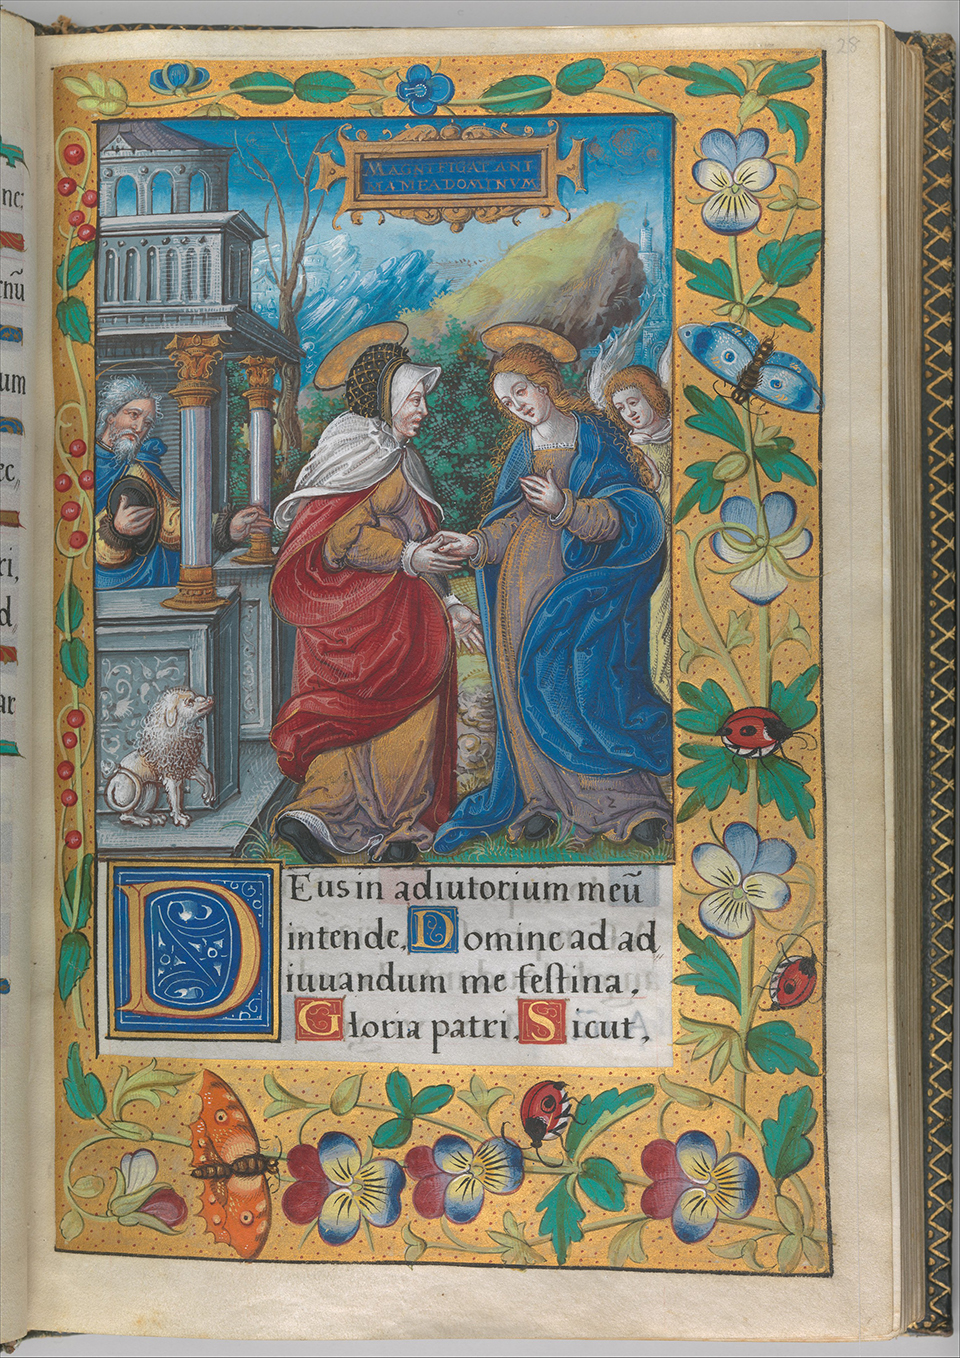 DP269759 Illuminated Book of Hours made for King Francis I.